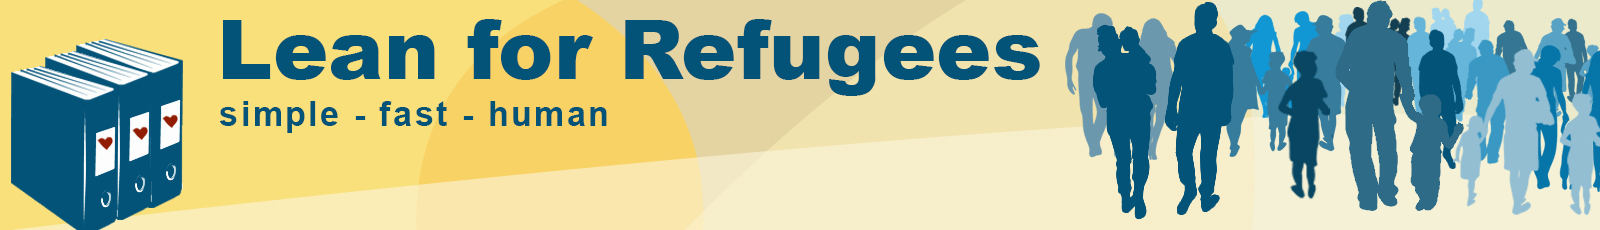 Banner Lean for Refugees